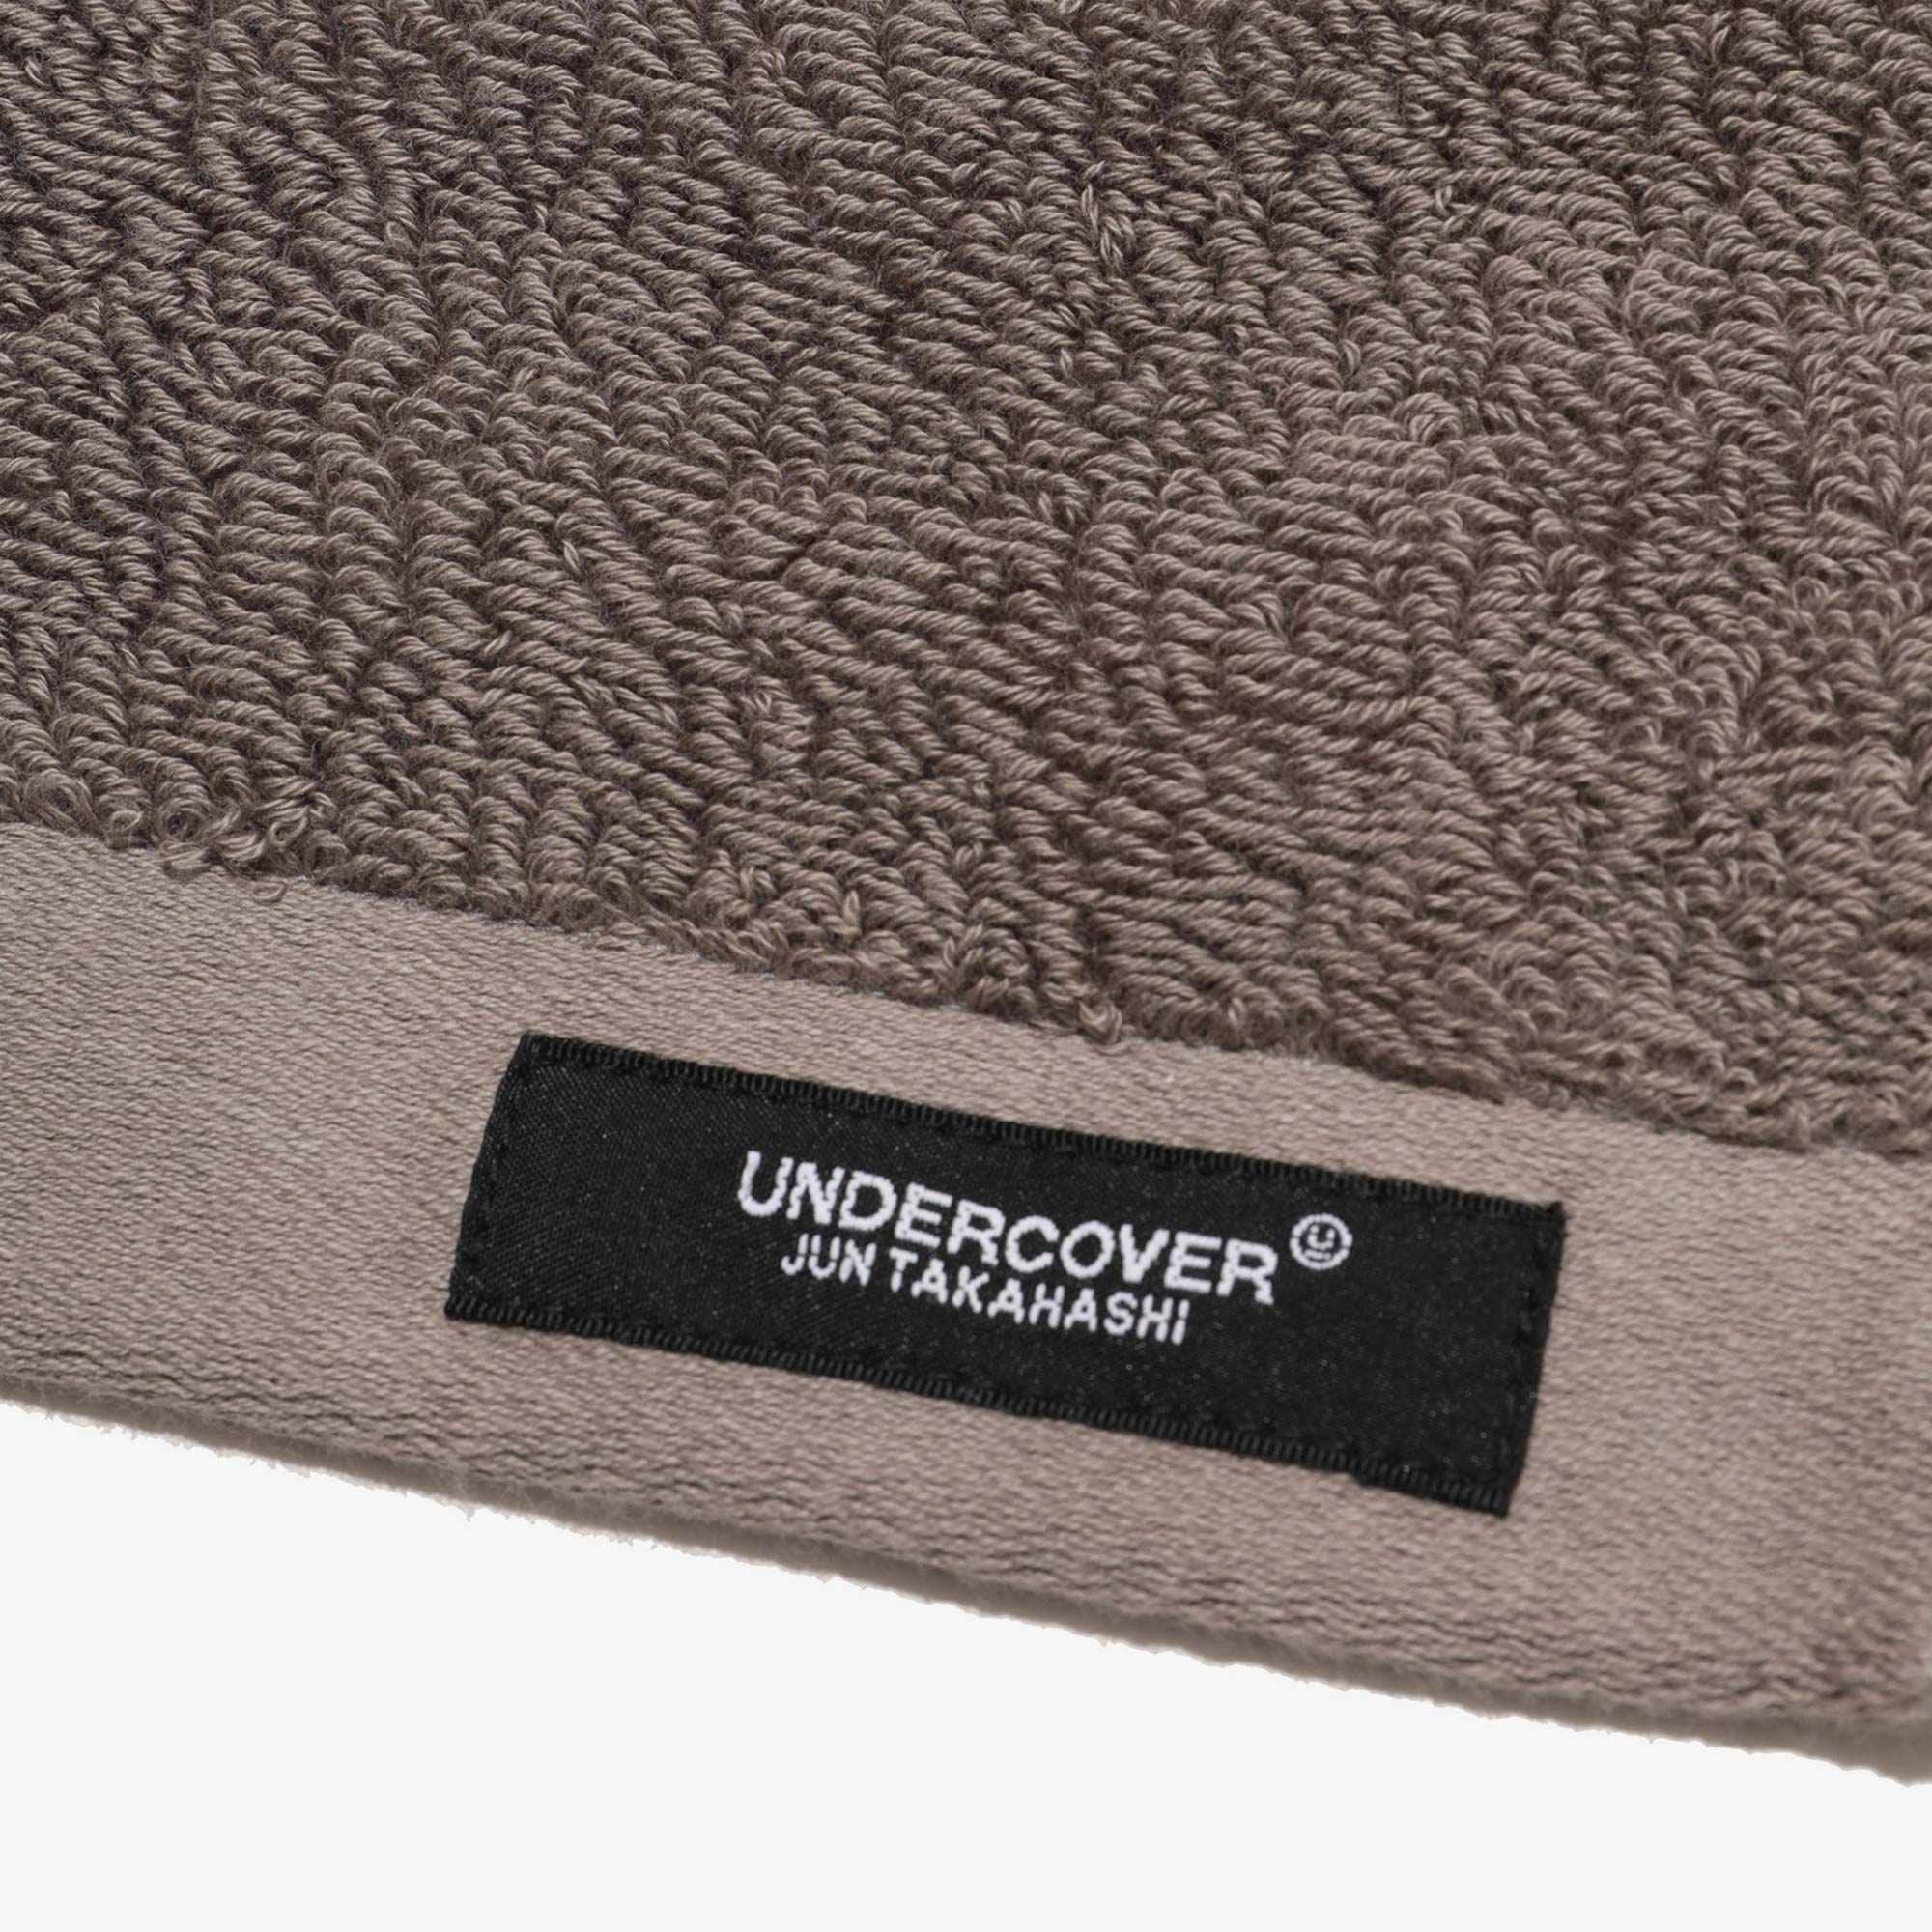 Undercover New Noise Face Towel UC1A4M03-2 - Gray 3